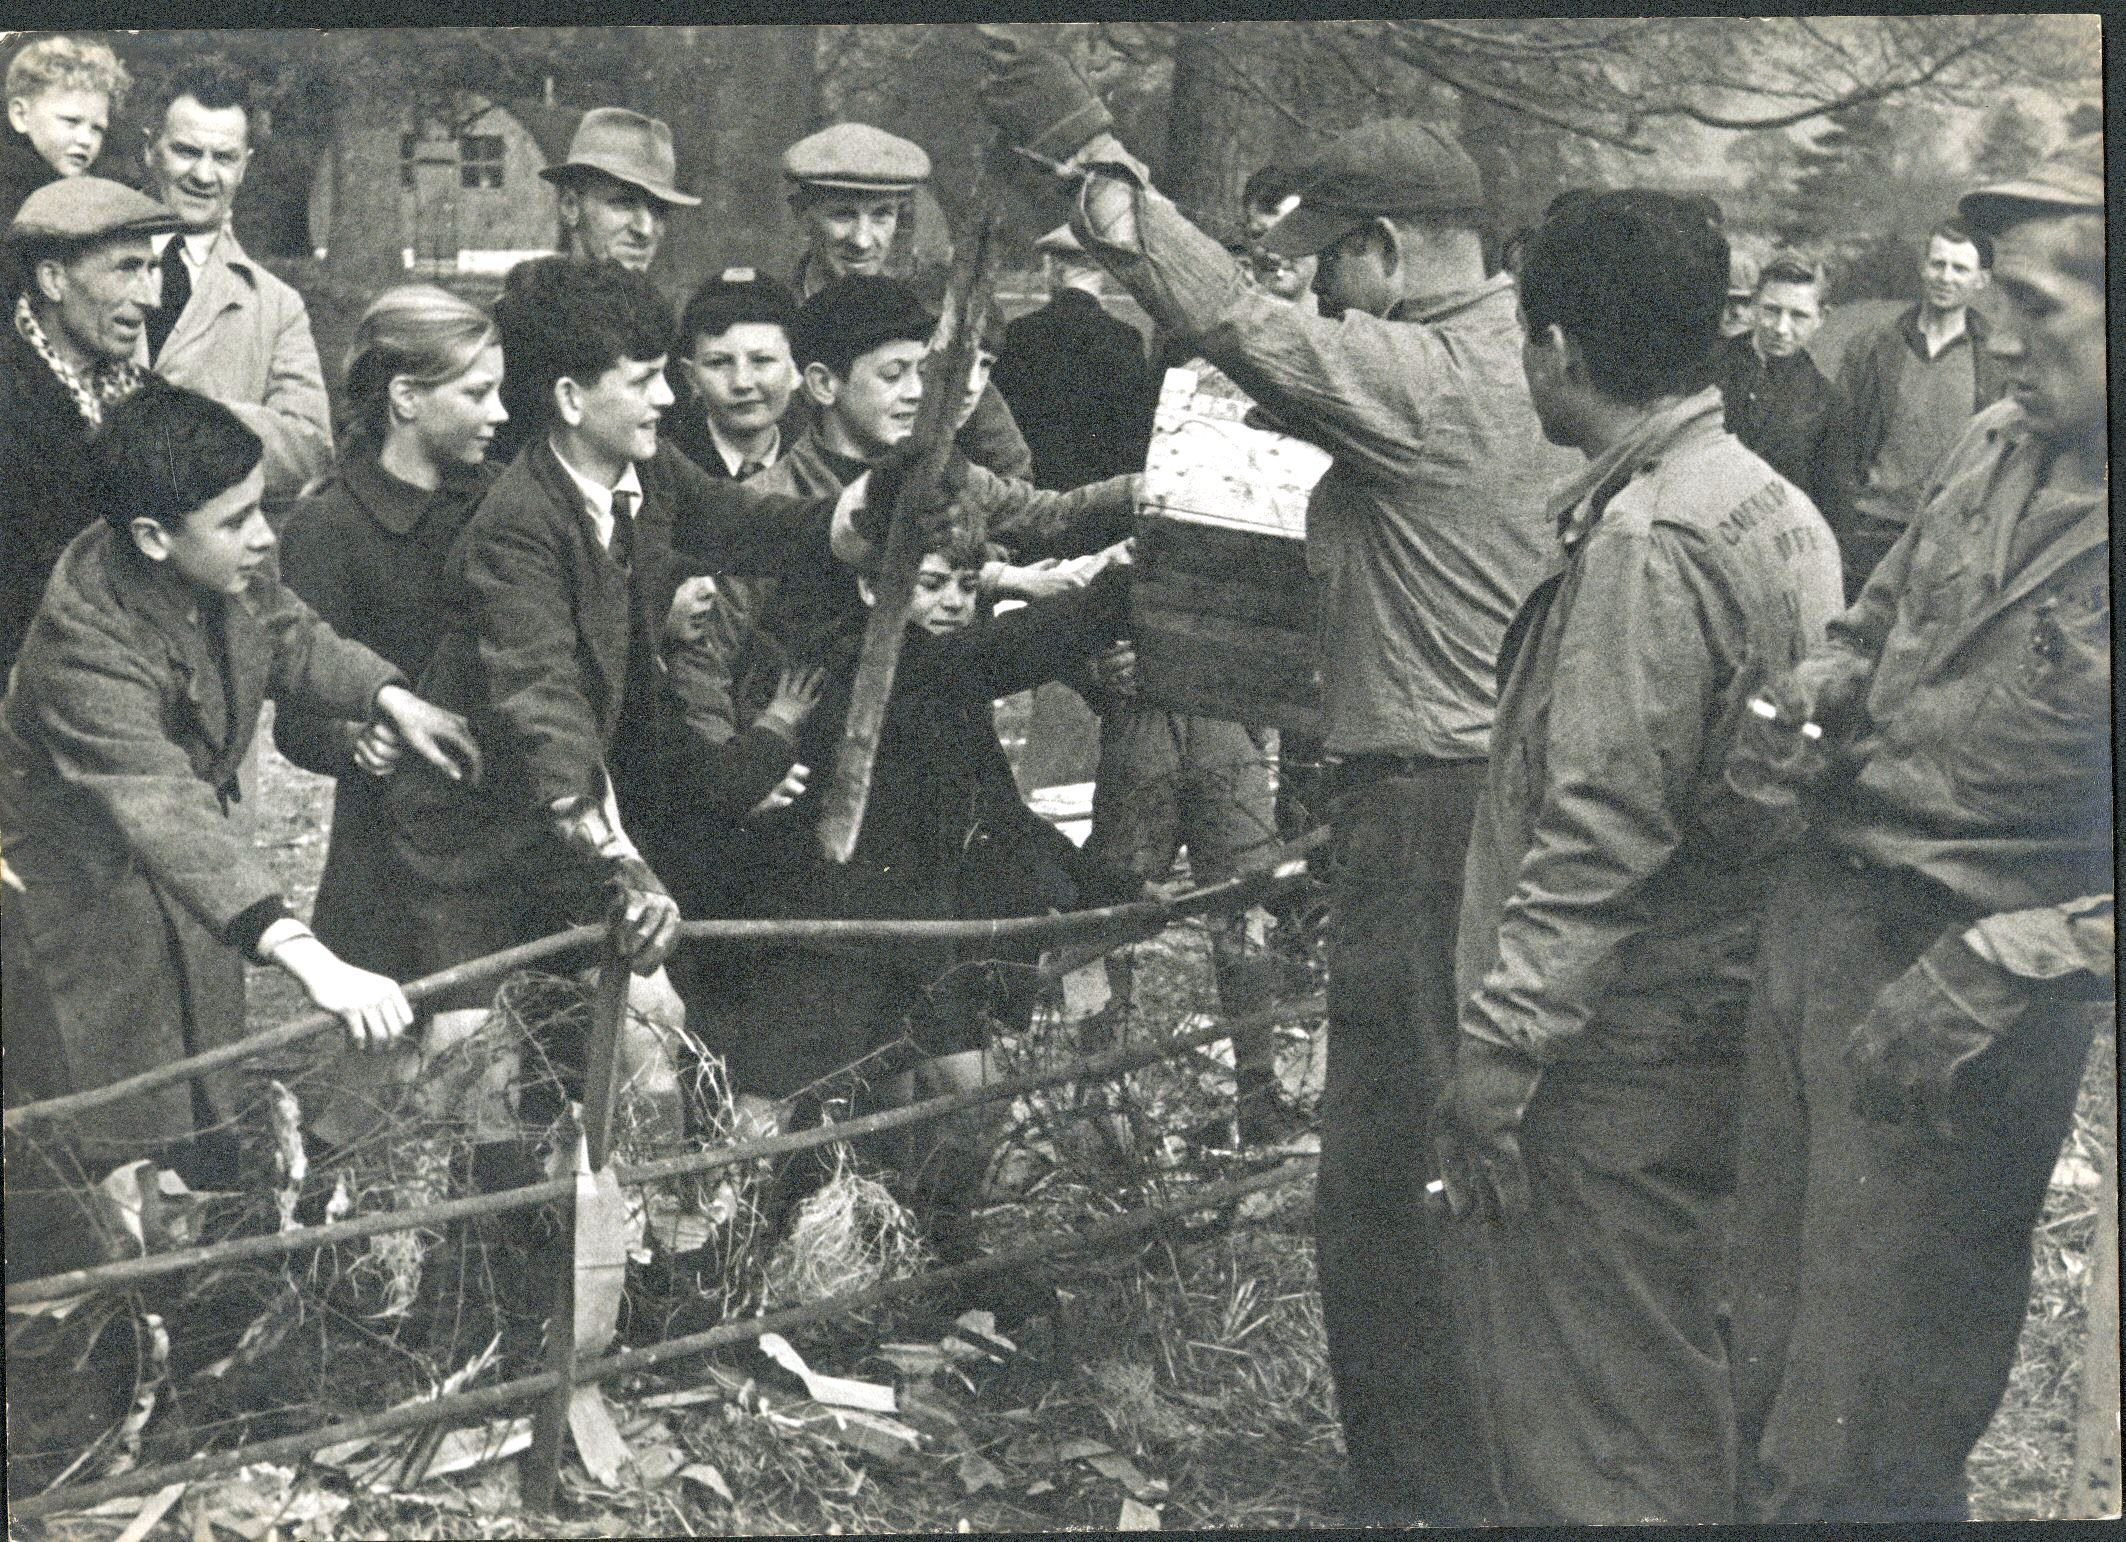 US soldiers give away scrap wood to local people, Honiton, Devon